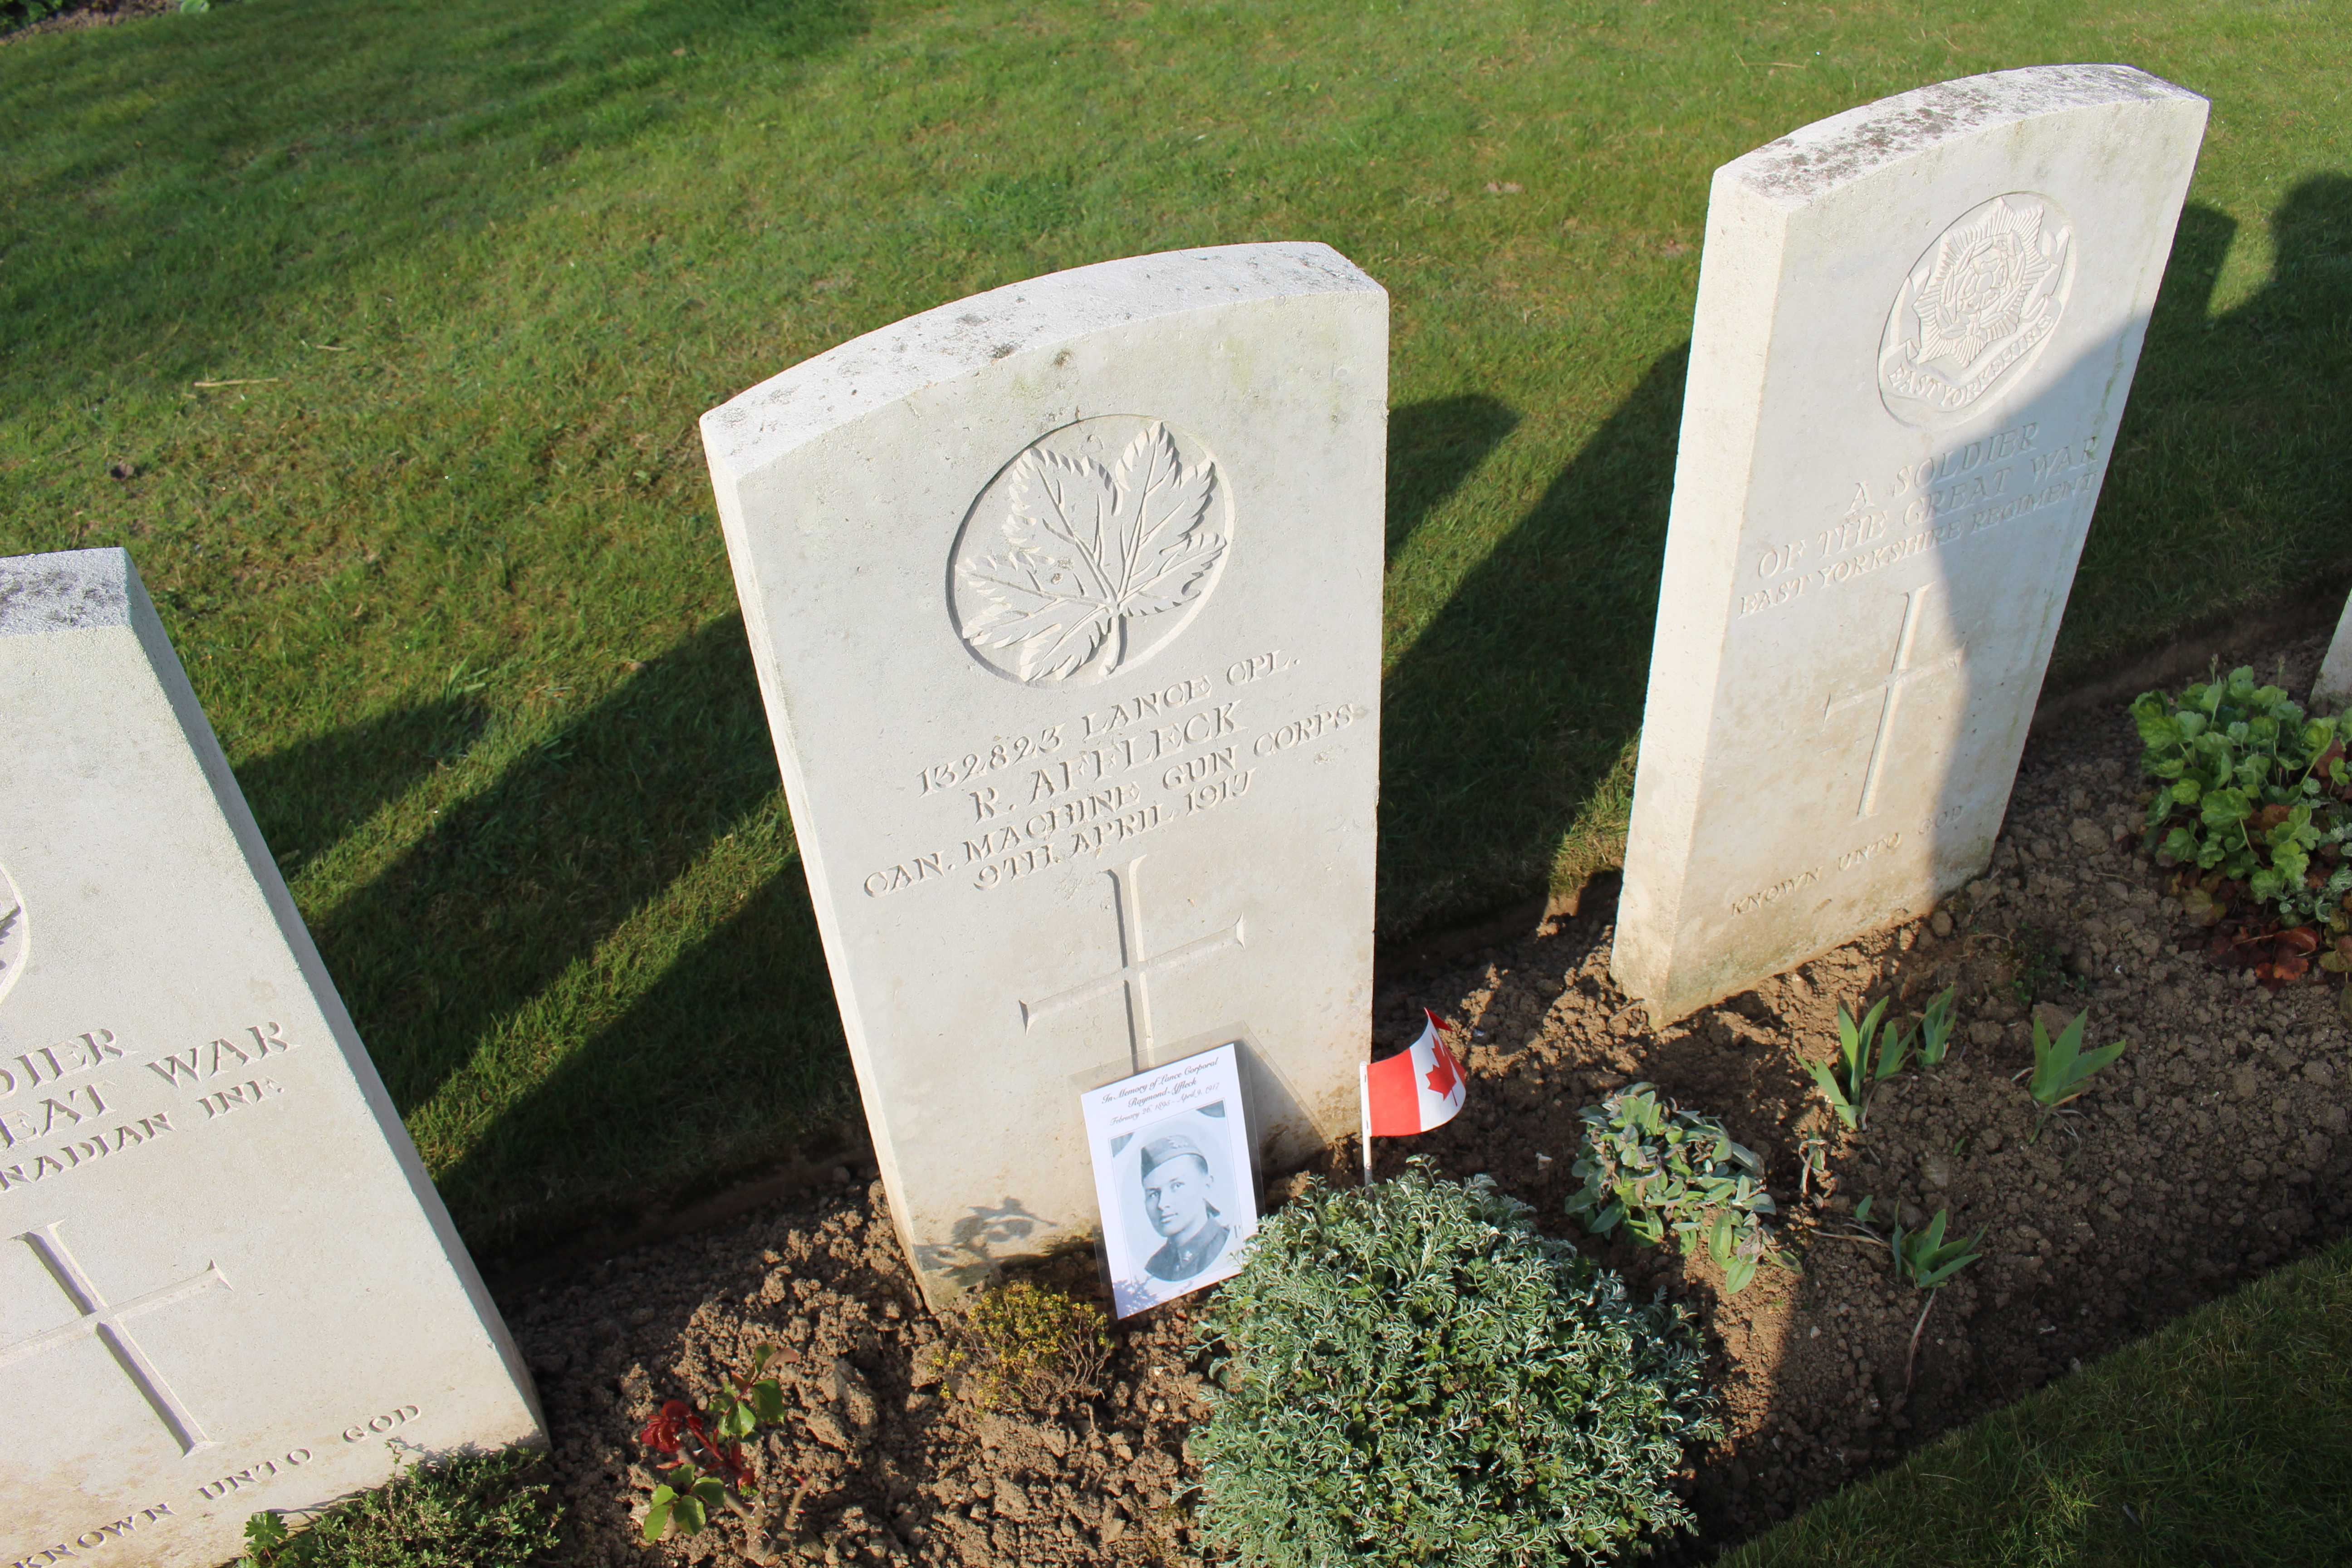 Paying respects– I travelled to France with my school for the 100th Anniversary of Vimy Ridge. As a project, we all researched a soldier and found our soldier in this cemetery. Mine soldier was Raymond.